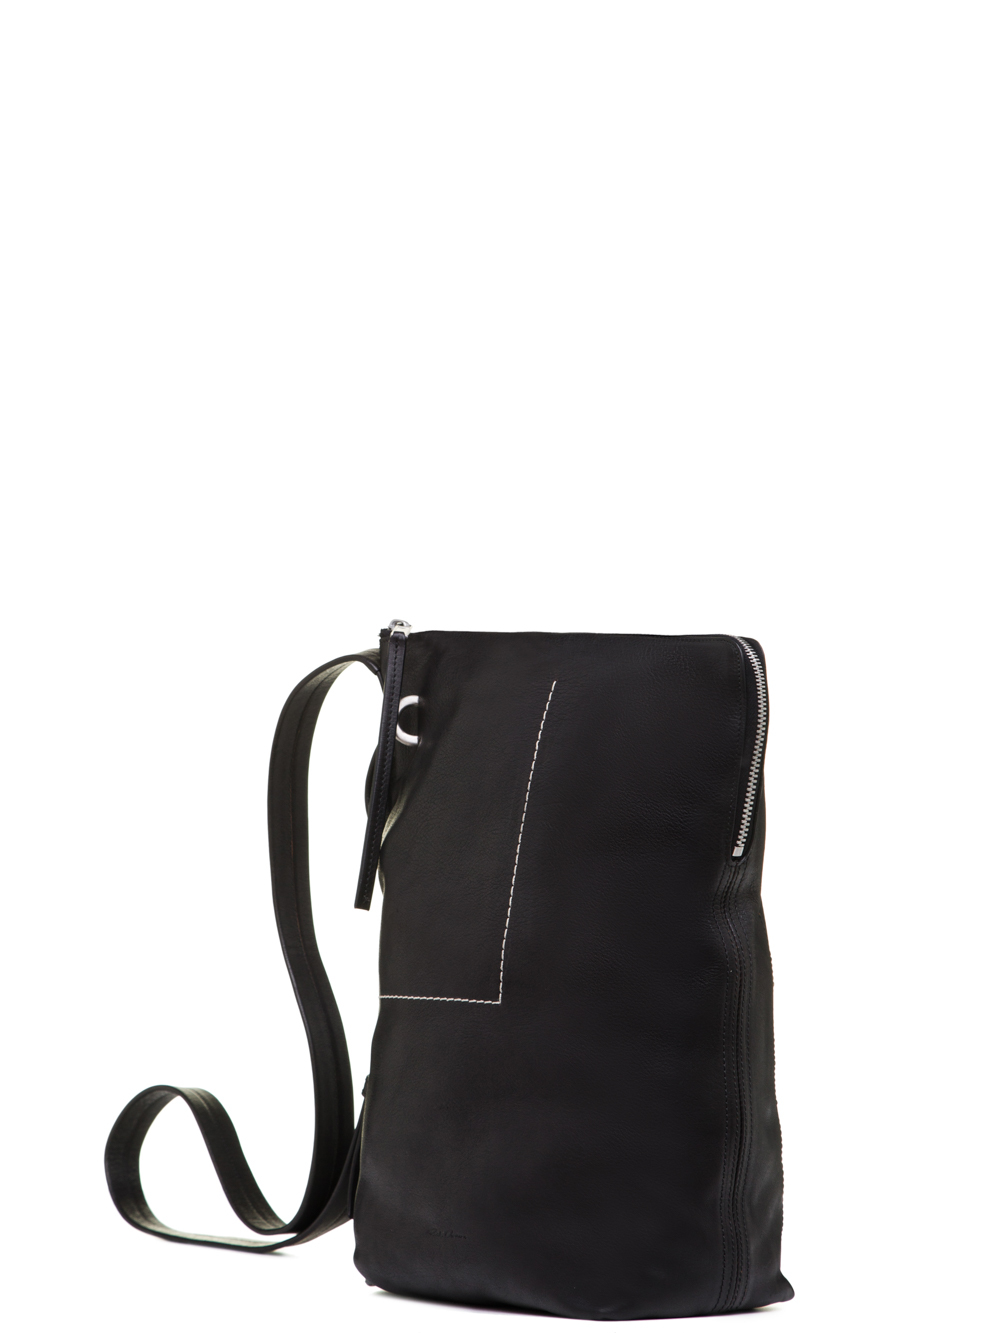 RICK OWENS SS19 BABEL SMALL BUCKET IN BLACK VEGETAL TANNED COW LEATHER